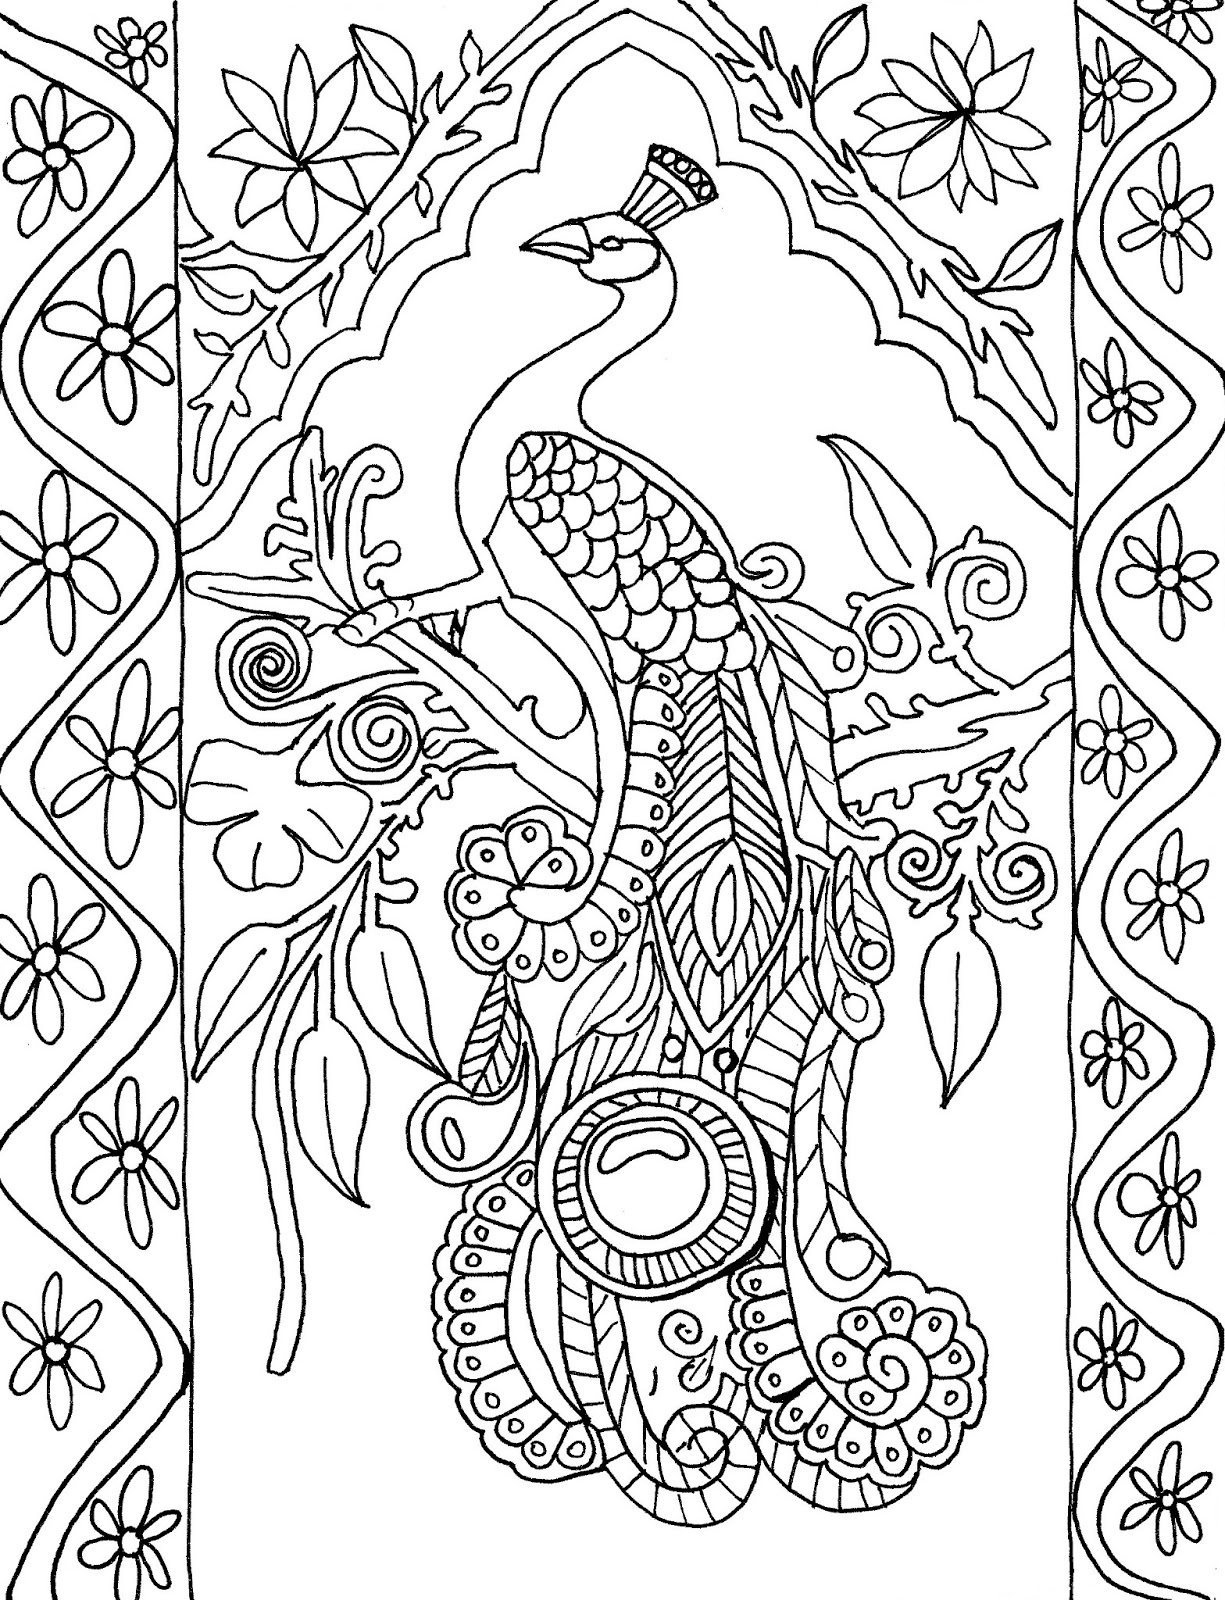 colouring pictures of peacock peacocks to color for kids peacocks kids coloring pages colouring of peacock pictures